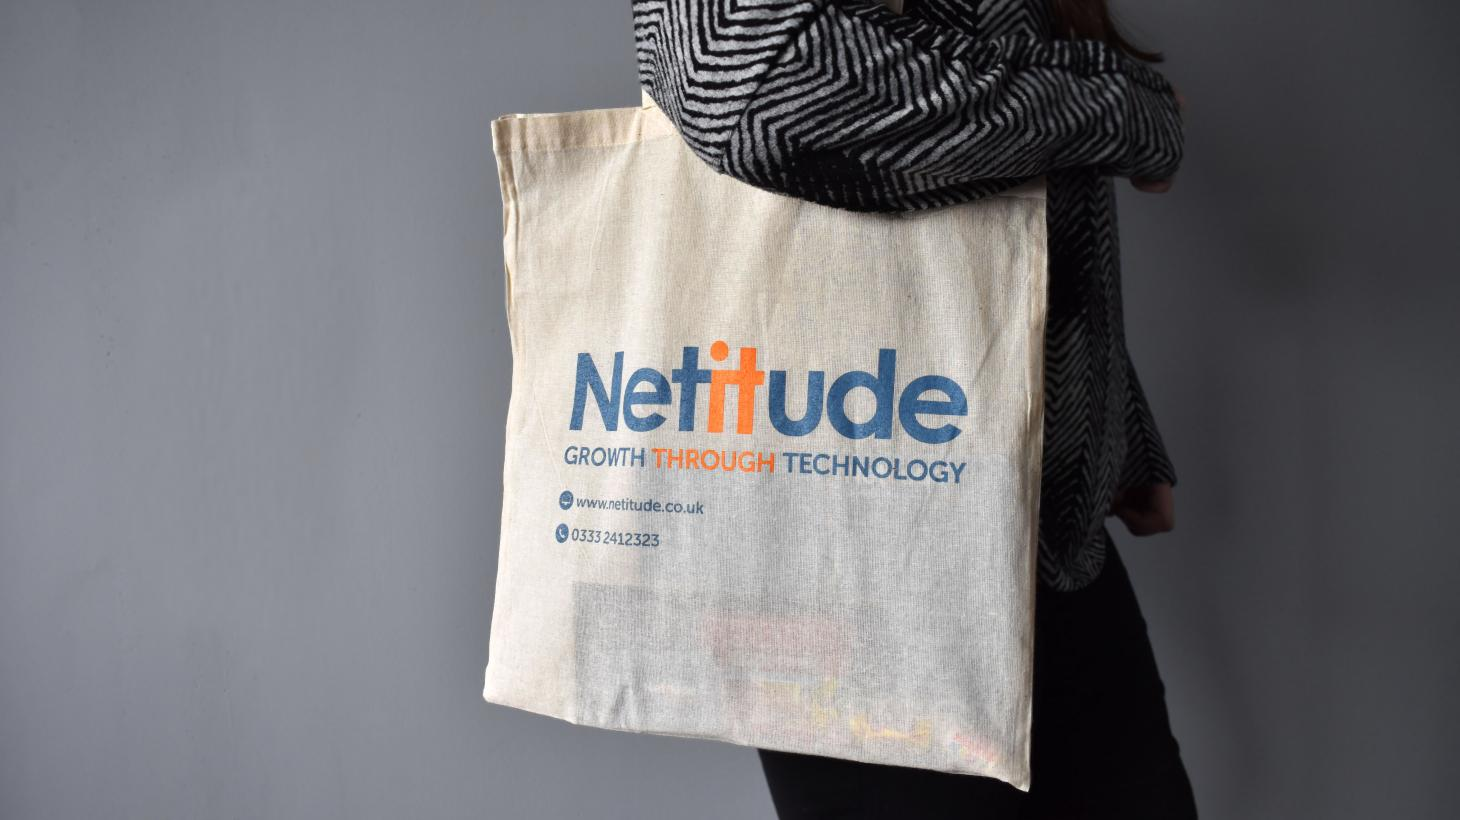 Our Netitude goodie bag for onboarding new clients